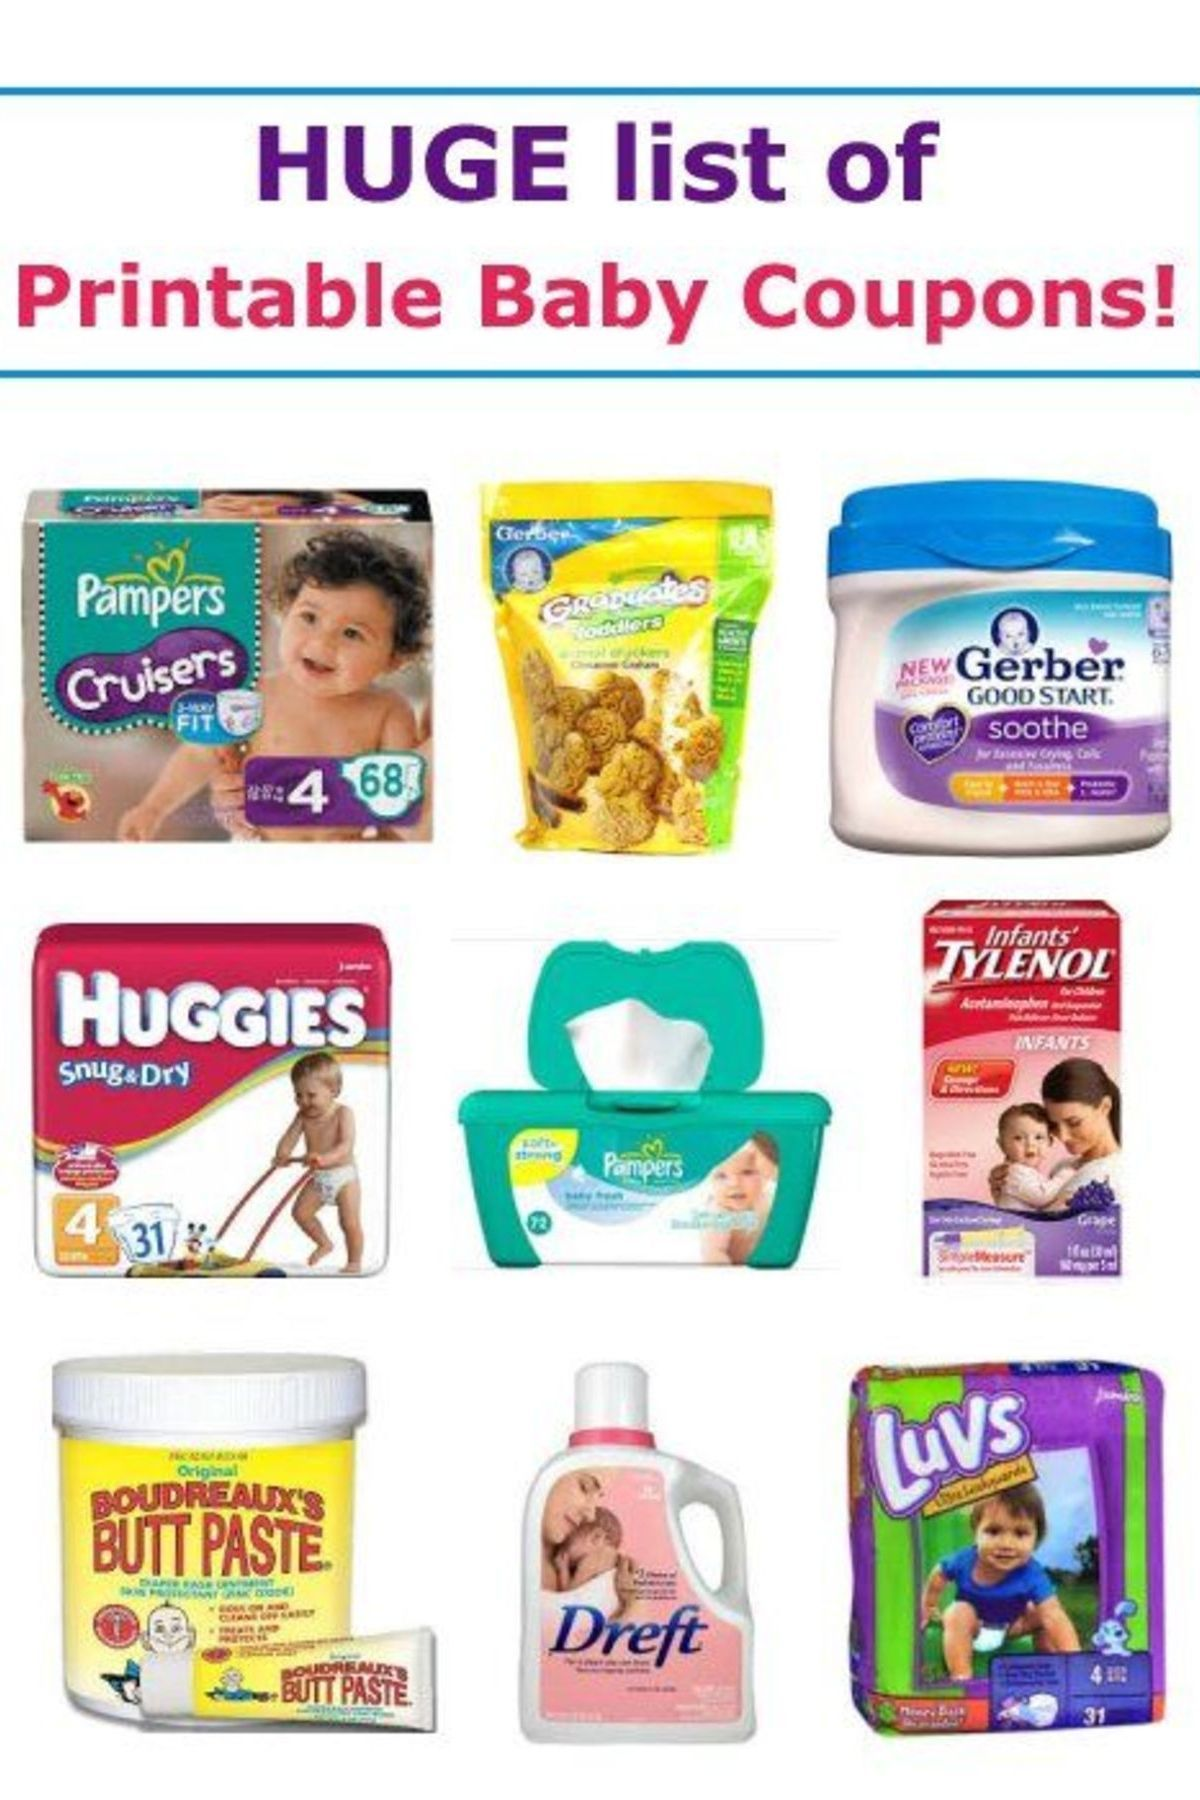 27 Printable Baby Coupons Available Get Diaper Coupons Baby Formula Coupons Plus More Printable Coupons From Y Baby Coupons Diaper Coupon Baby Formula Coupons